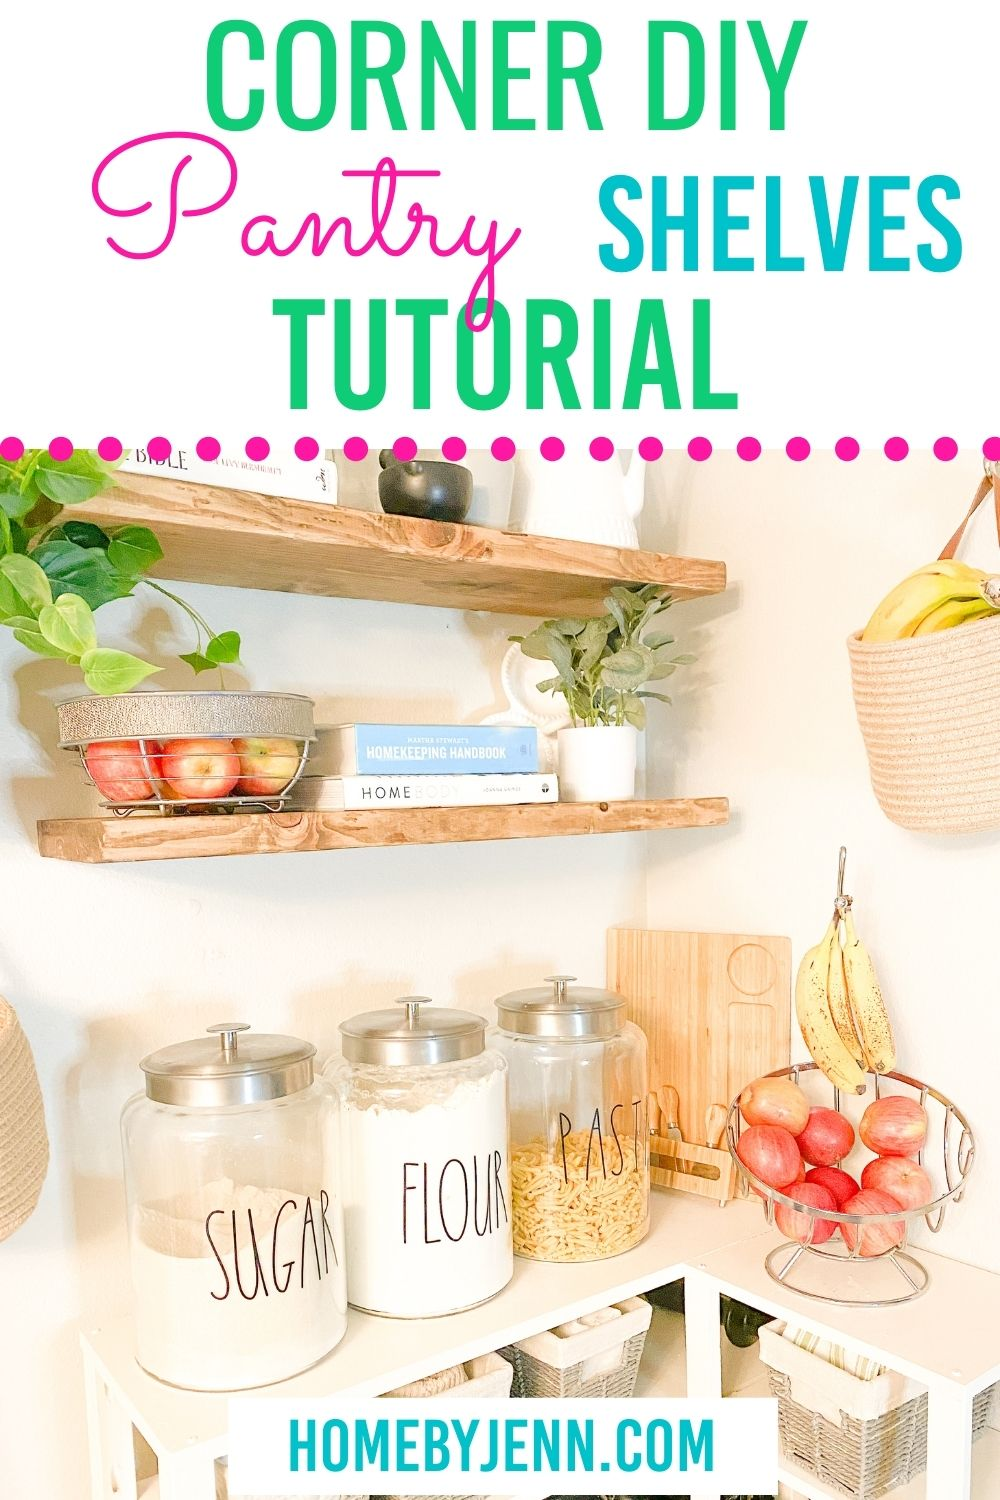 These DIY Pantry Shelves are just what I needed to add more storage to our kitchen. Learn how I made these DIY Pantry Shelves with a few pieces of wood. This is a simple beginner DIY project anyone can do. via @homebyjenn